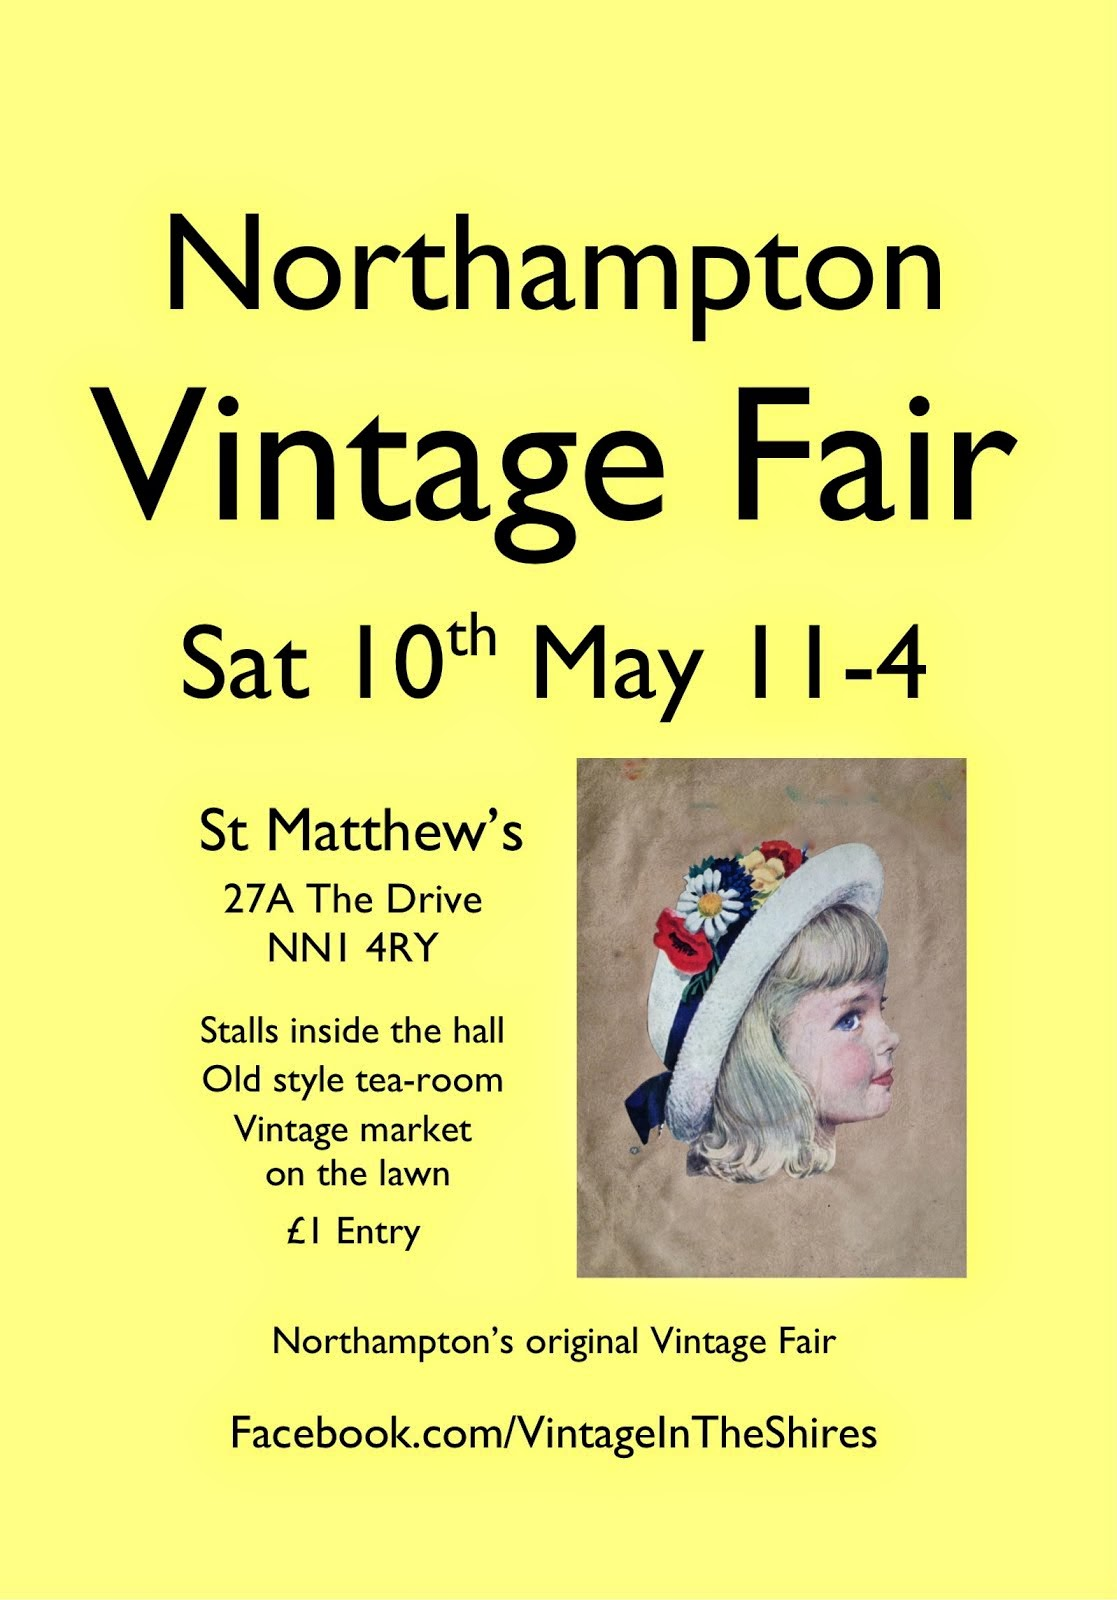 Northampton Vintage Fair